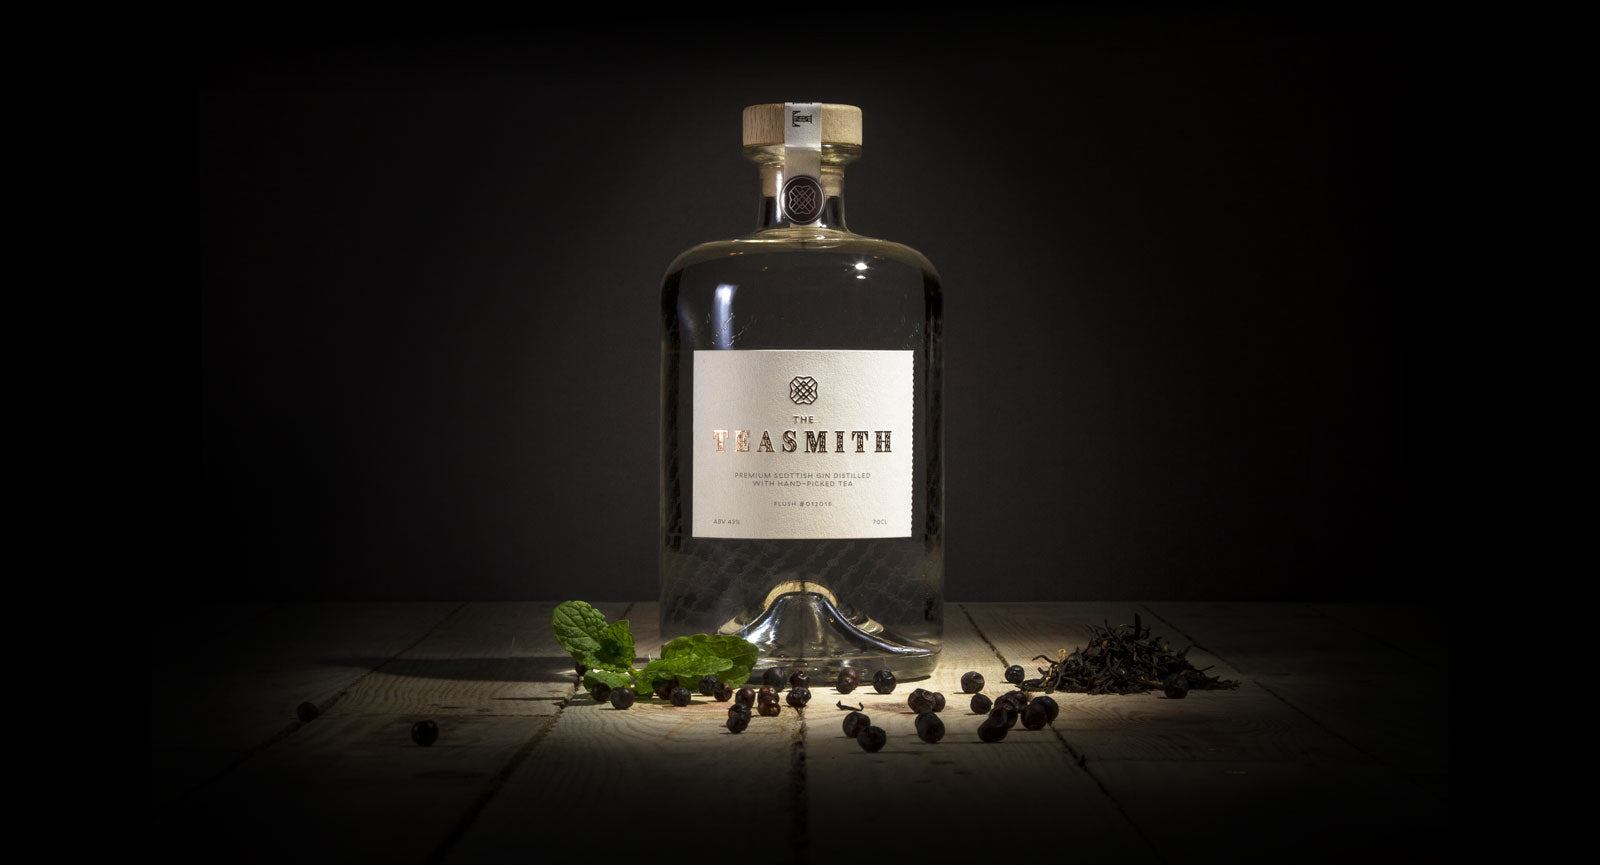 The Teasmith Scottish Premium gin bottle and botanicals